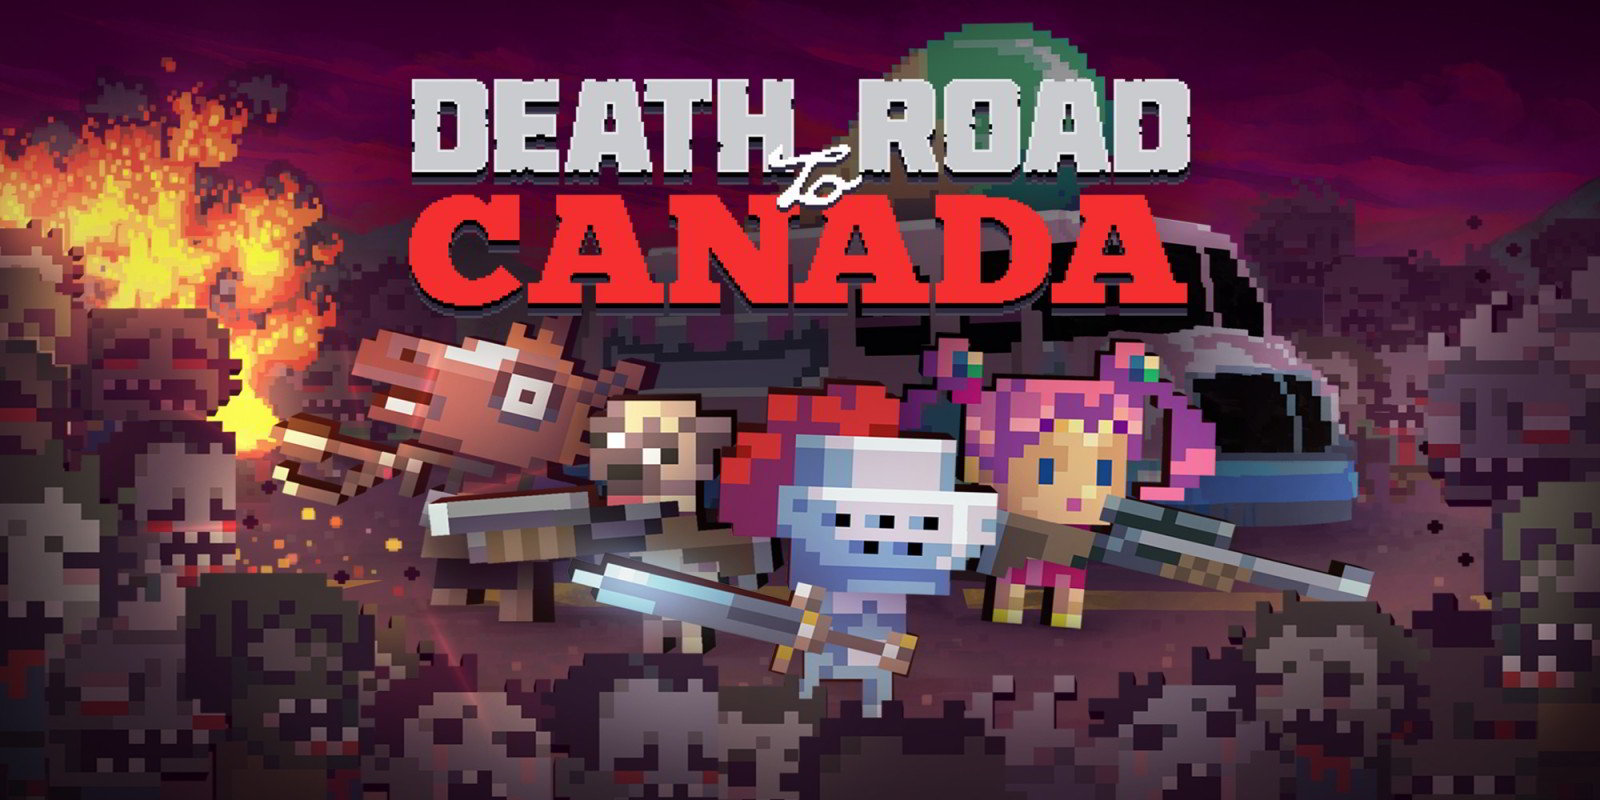 Death Road to Canada - Recensione | Massacri zombi in salsa pixel